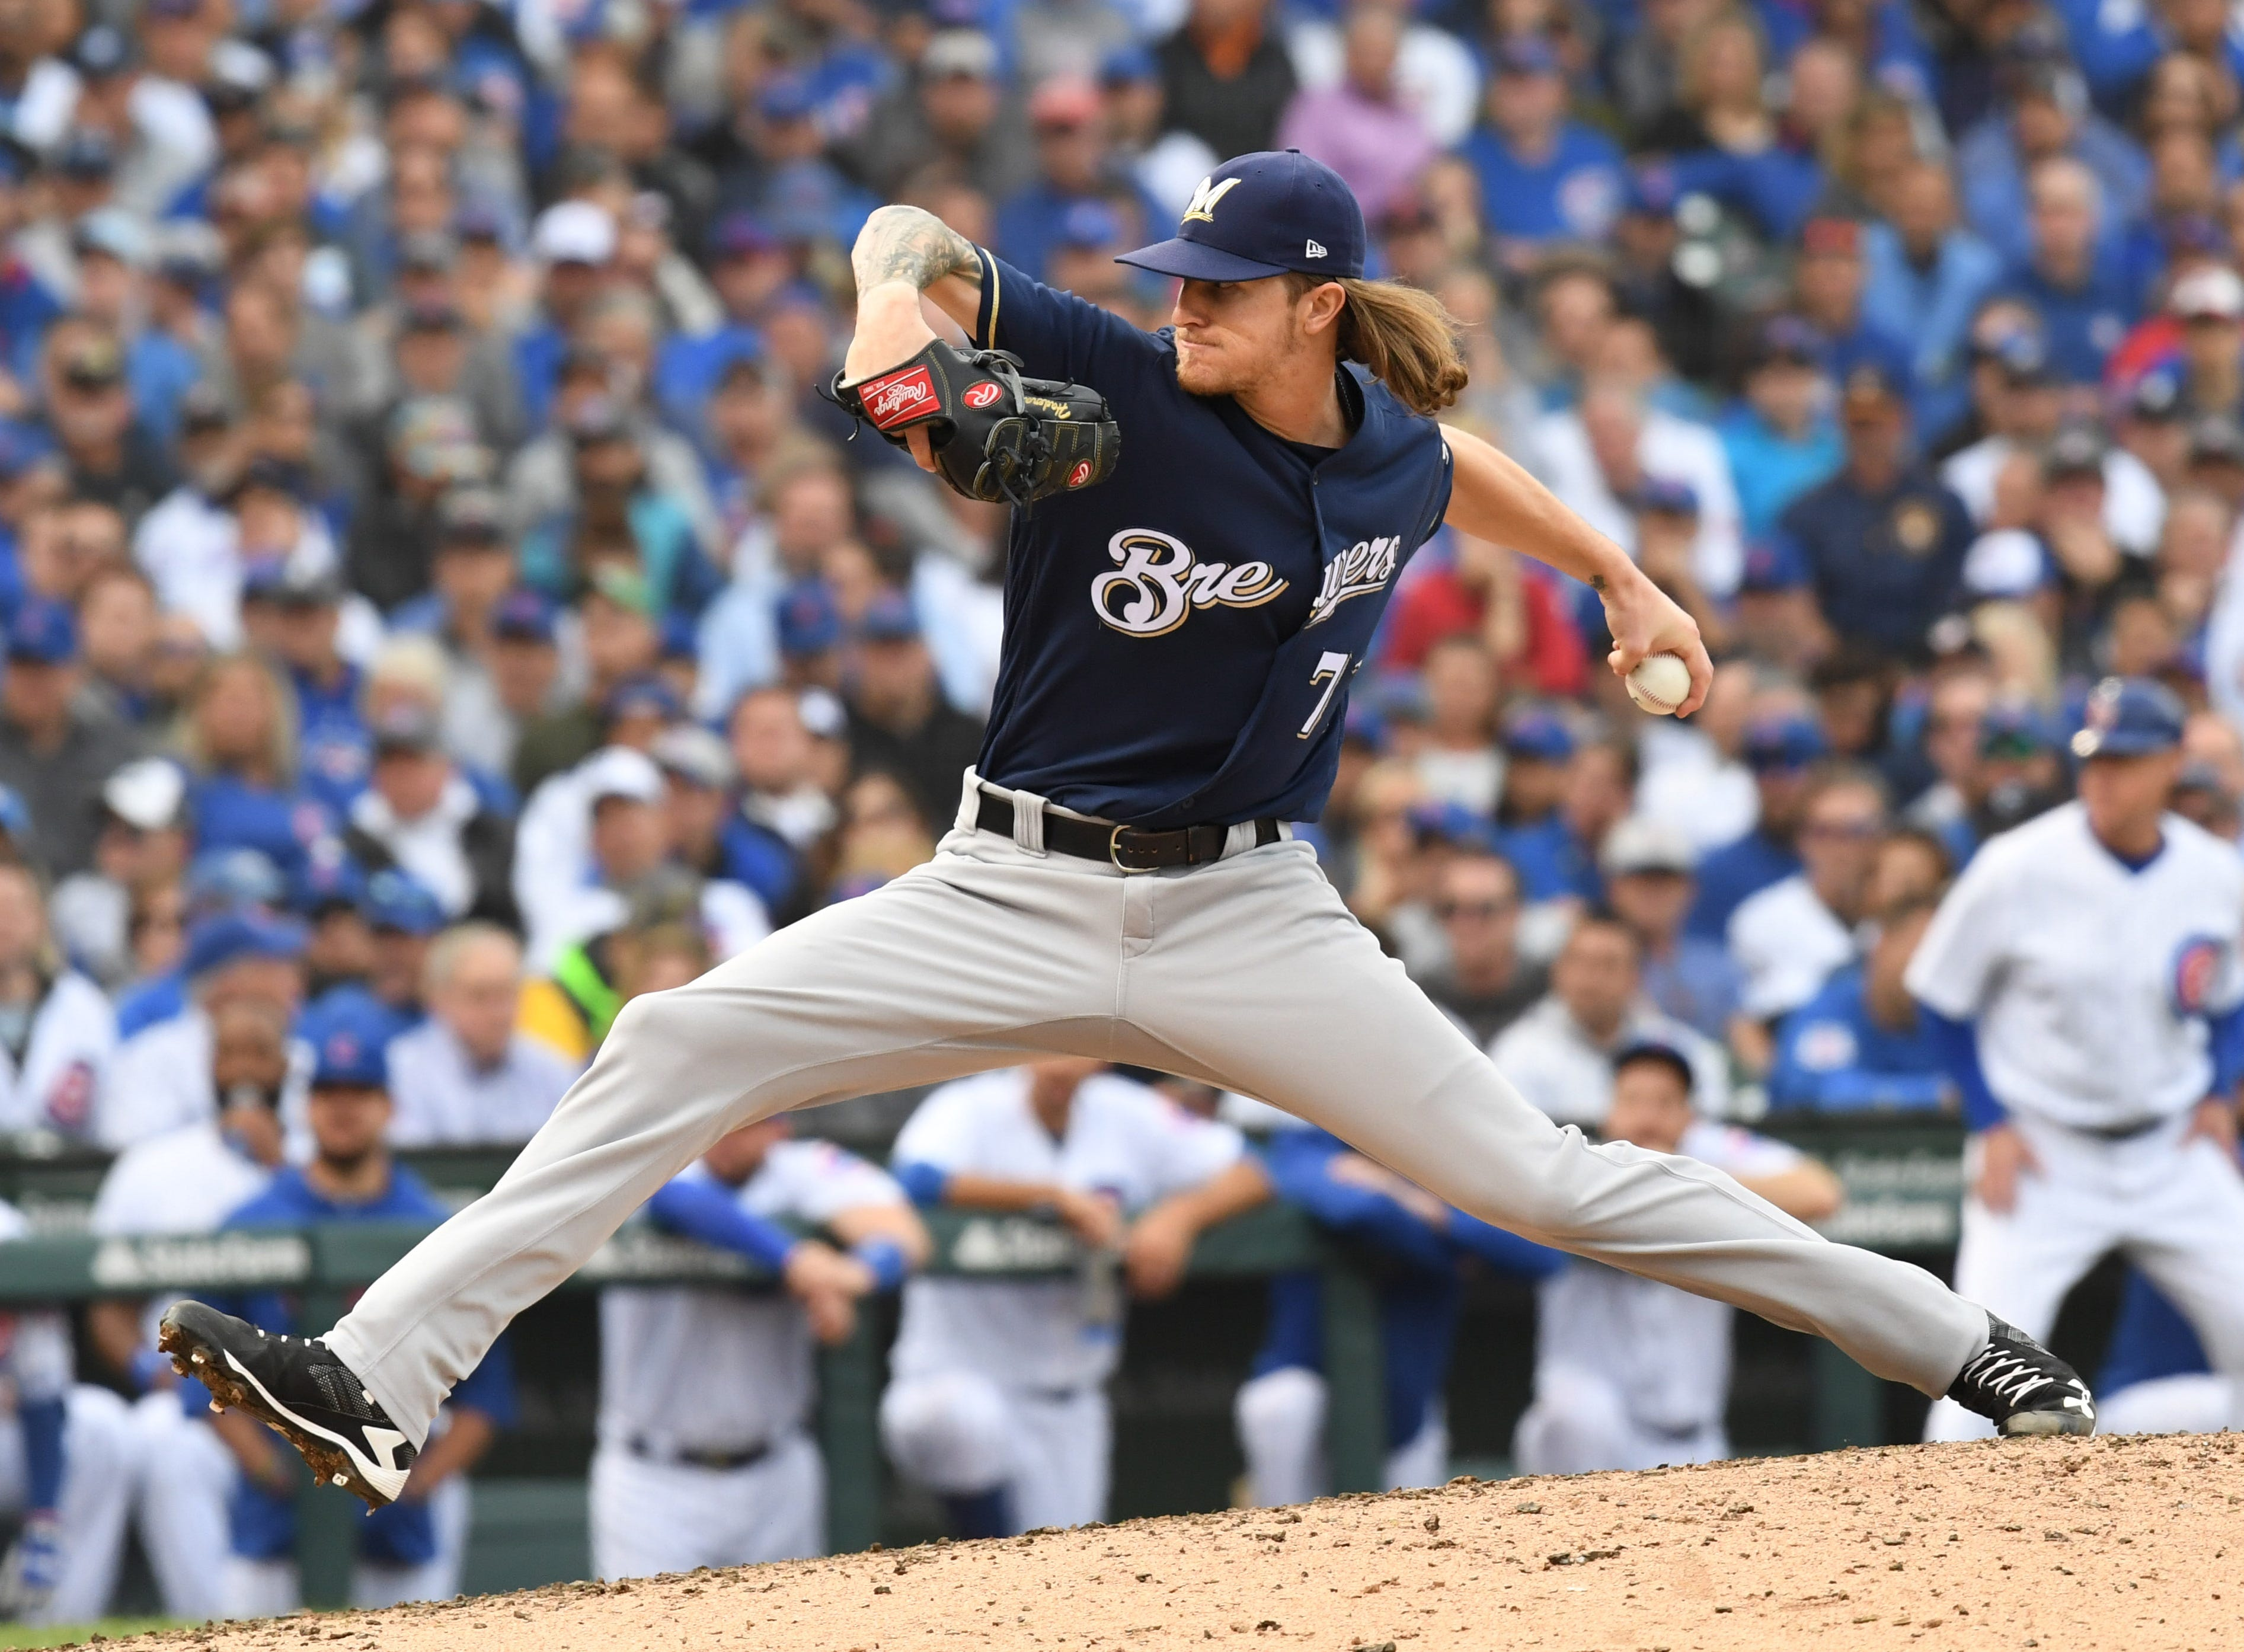 Brewers reliever Josh Hader throws a pitch in the eighth.